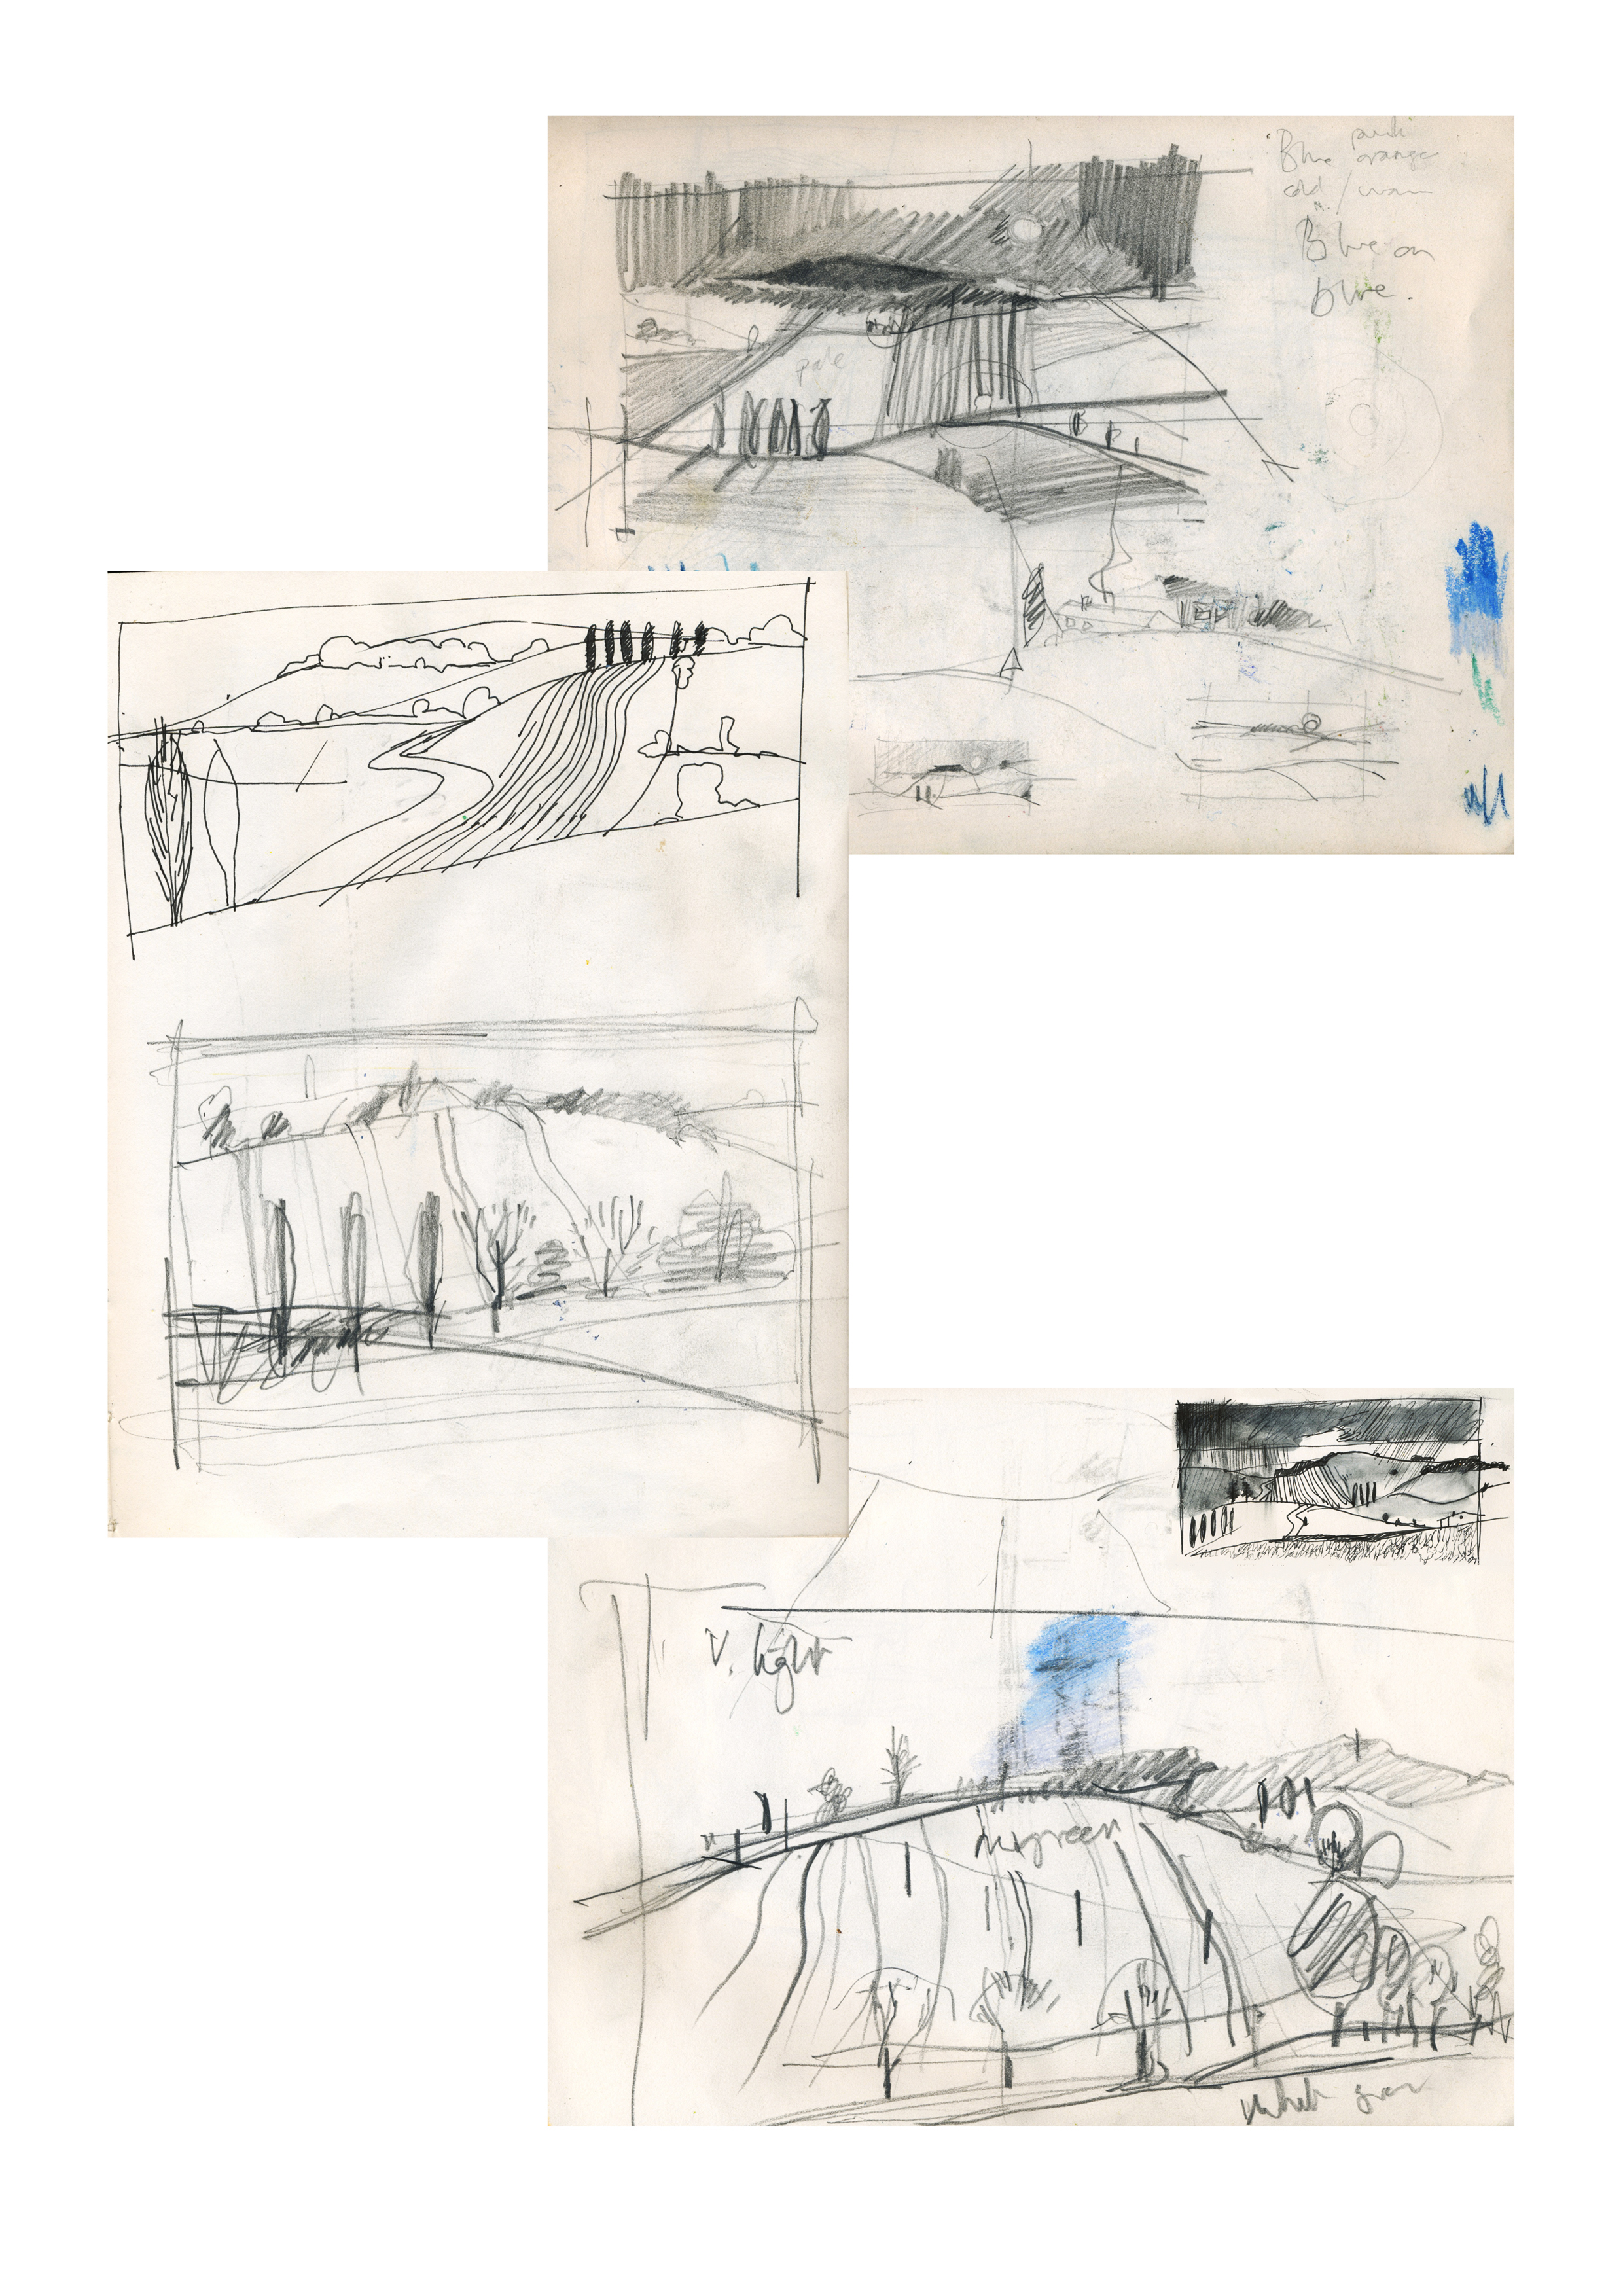 Sketches and Notes on a landscape